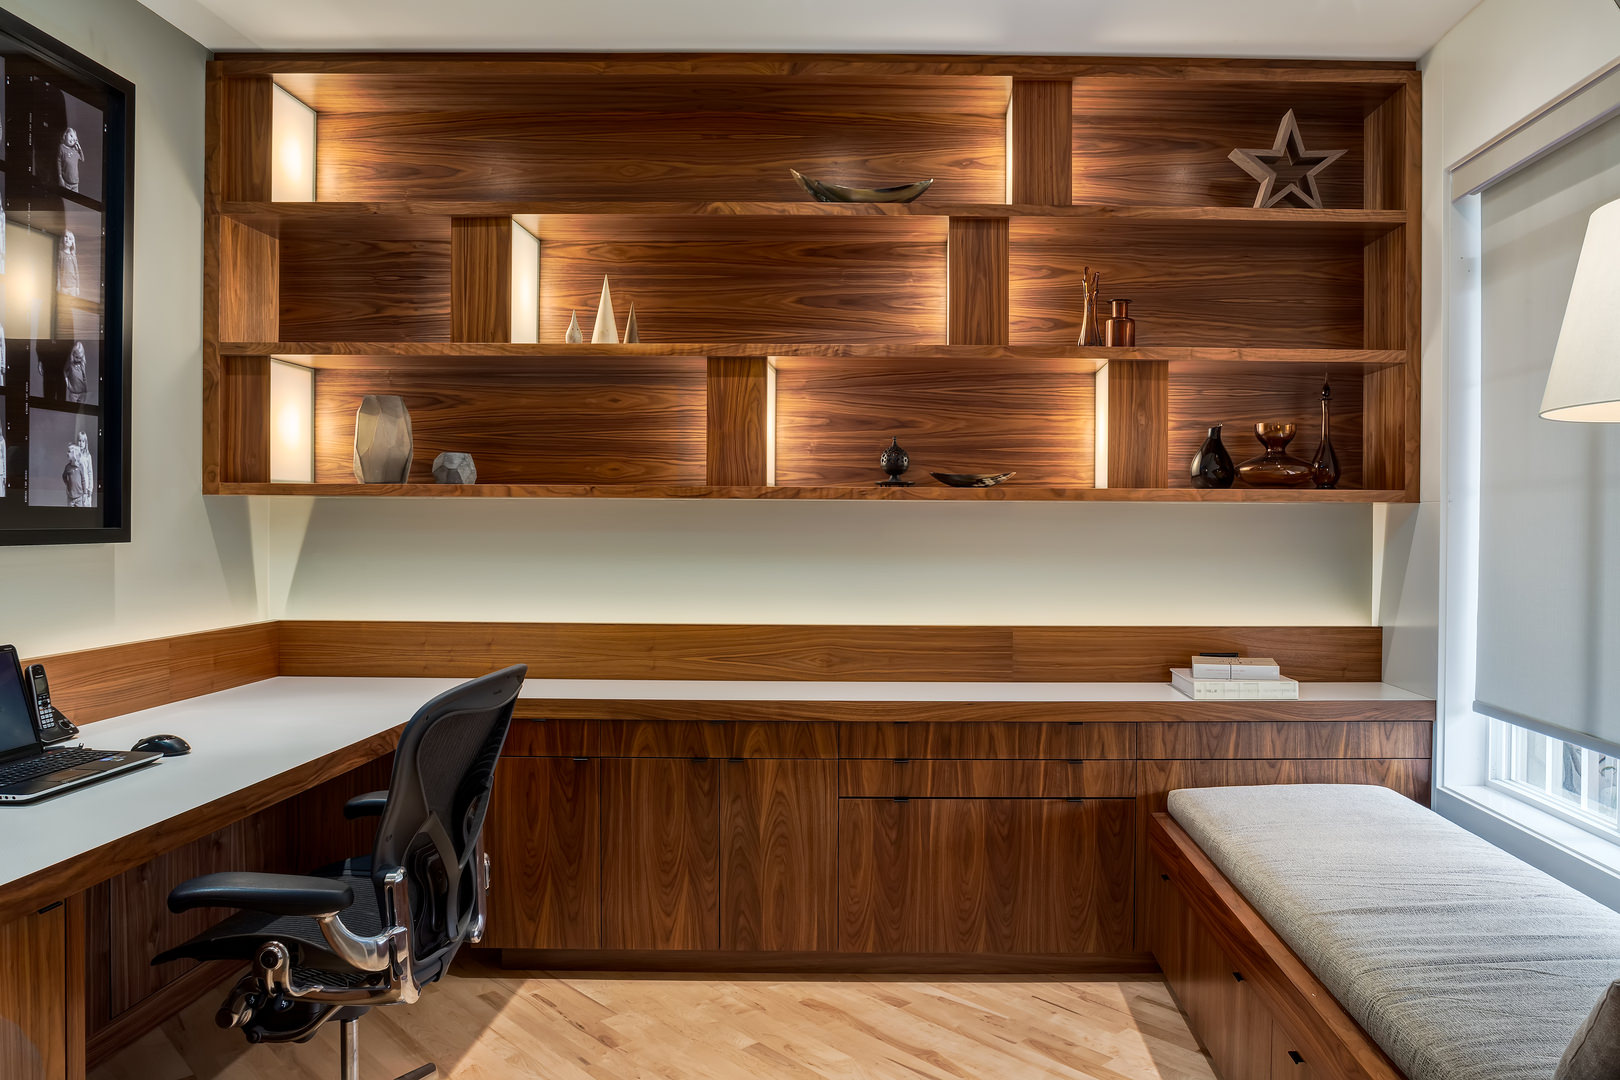 The study also has a shelf and a lying space besides the window.